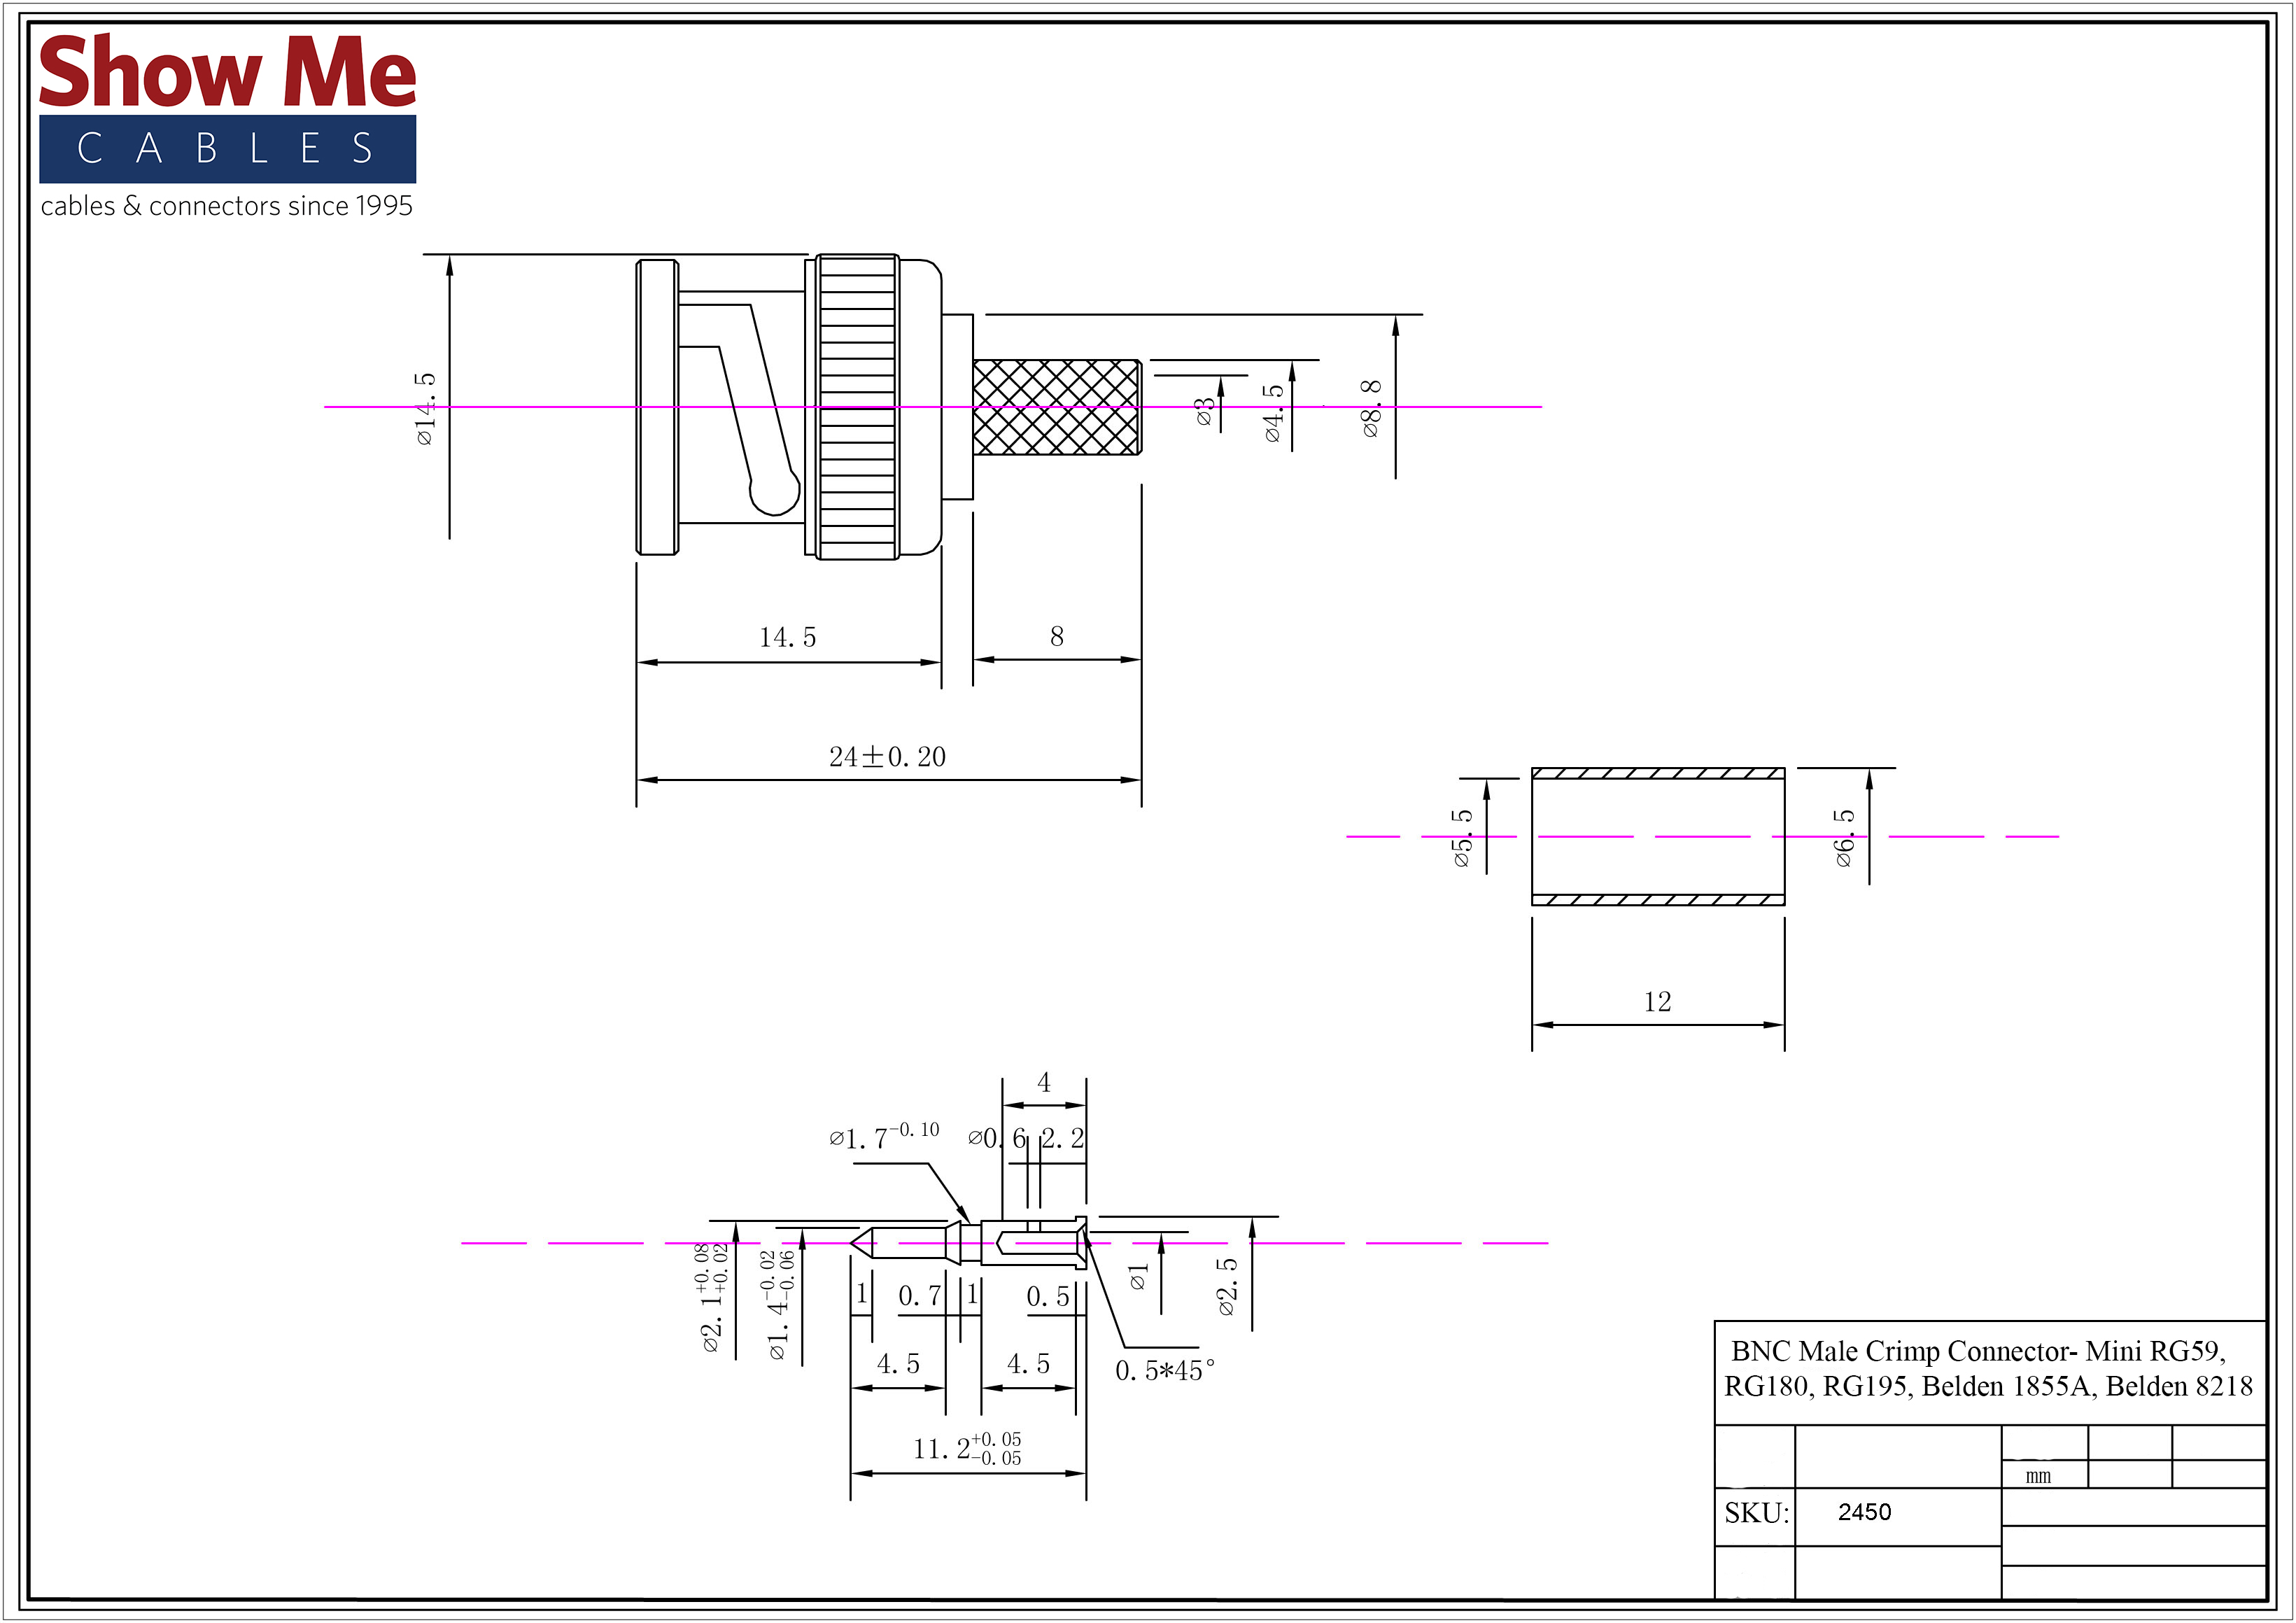 3 Piece Crimp Deluxe Bnc Connector Wiring Diagram Click Here To Download The Spec Sheet